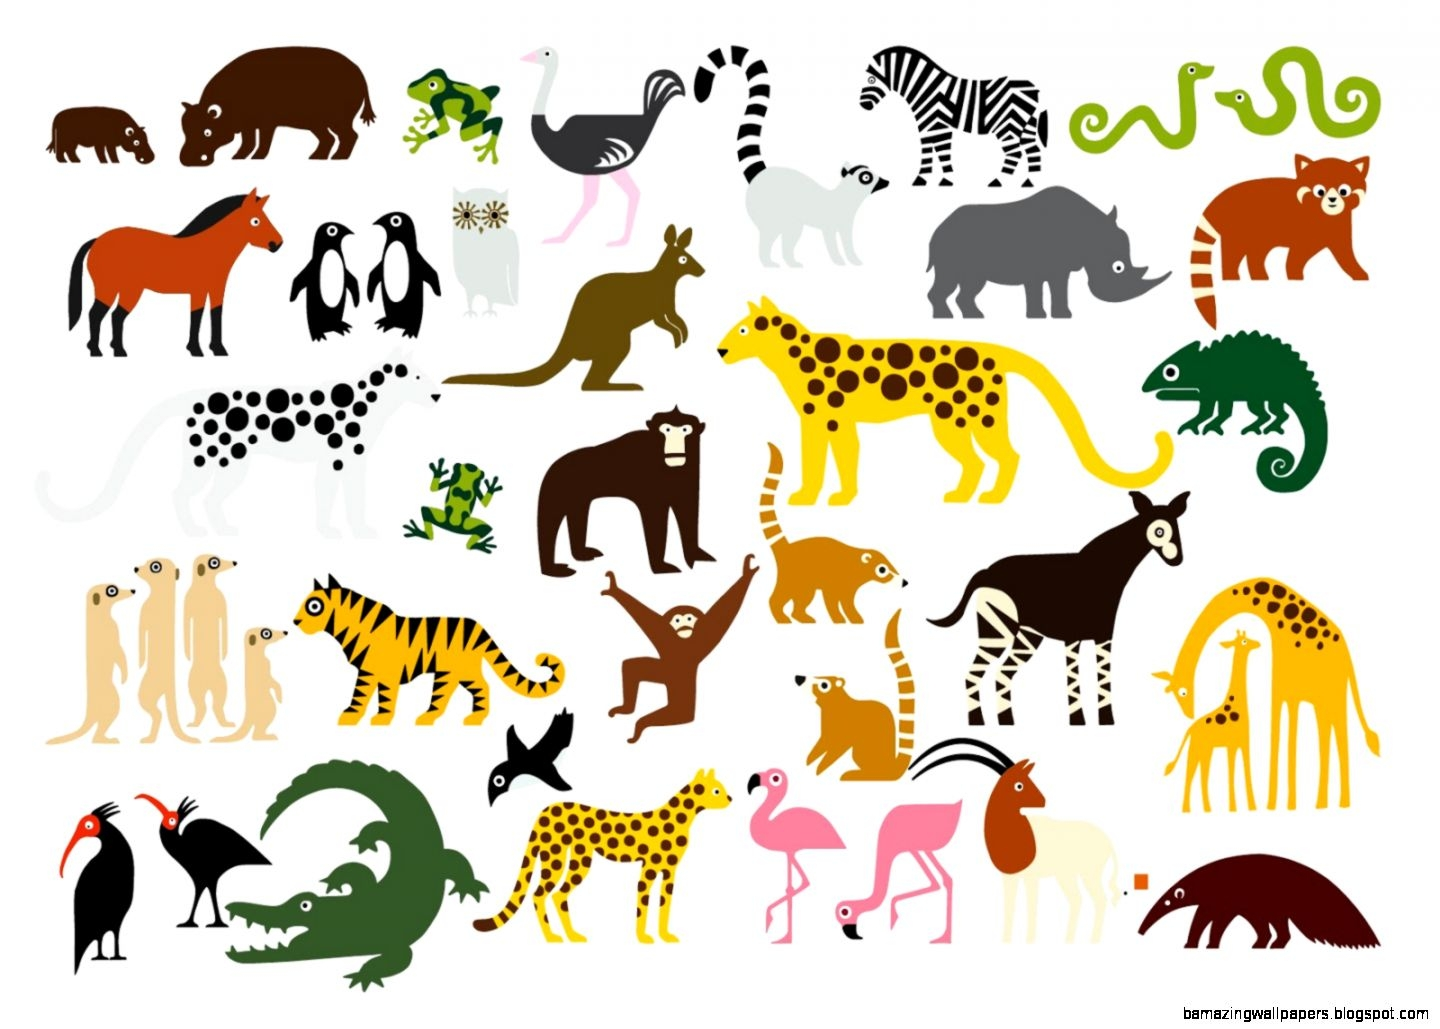 Zoo animals together clipart - .